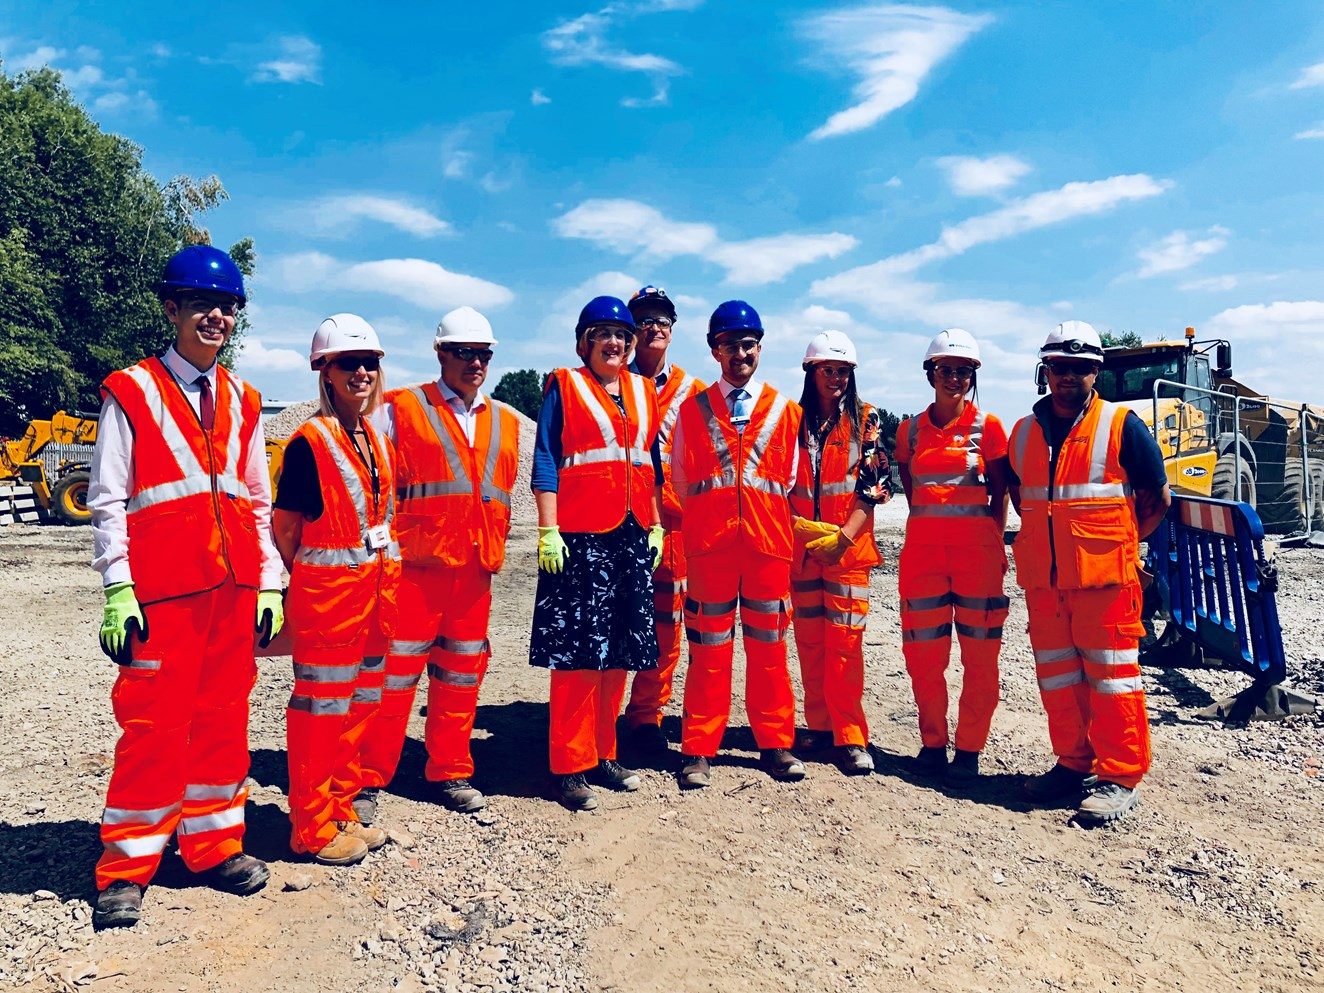 Local MP views progress on new £46m train depot in Wigan: Yvonne Fovargue MP and representatives from Network Rail and Northern